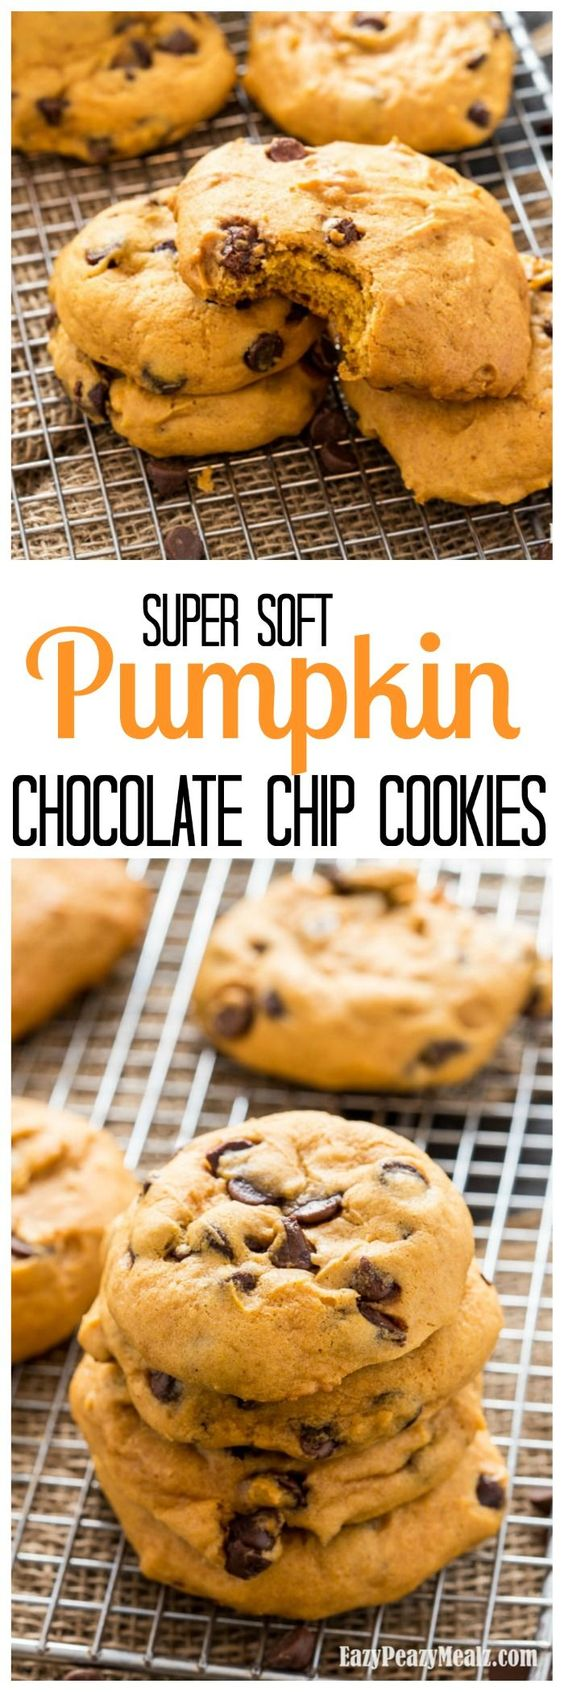 Super Soft Pumpkin Chocolate Chip Cookies | Recipe | Pumpkin Chocolate ...